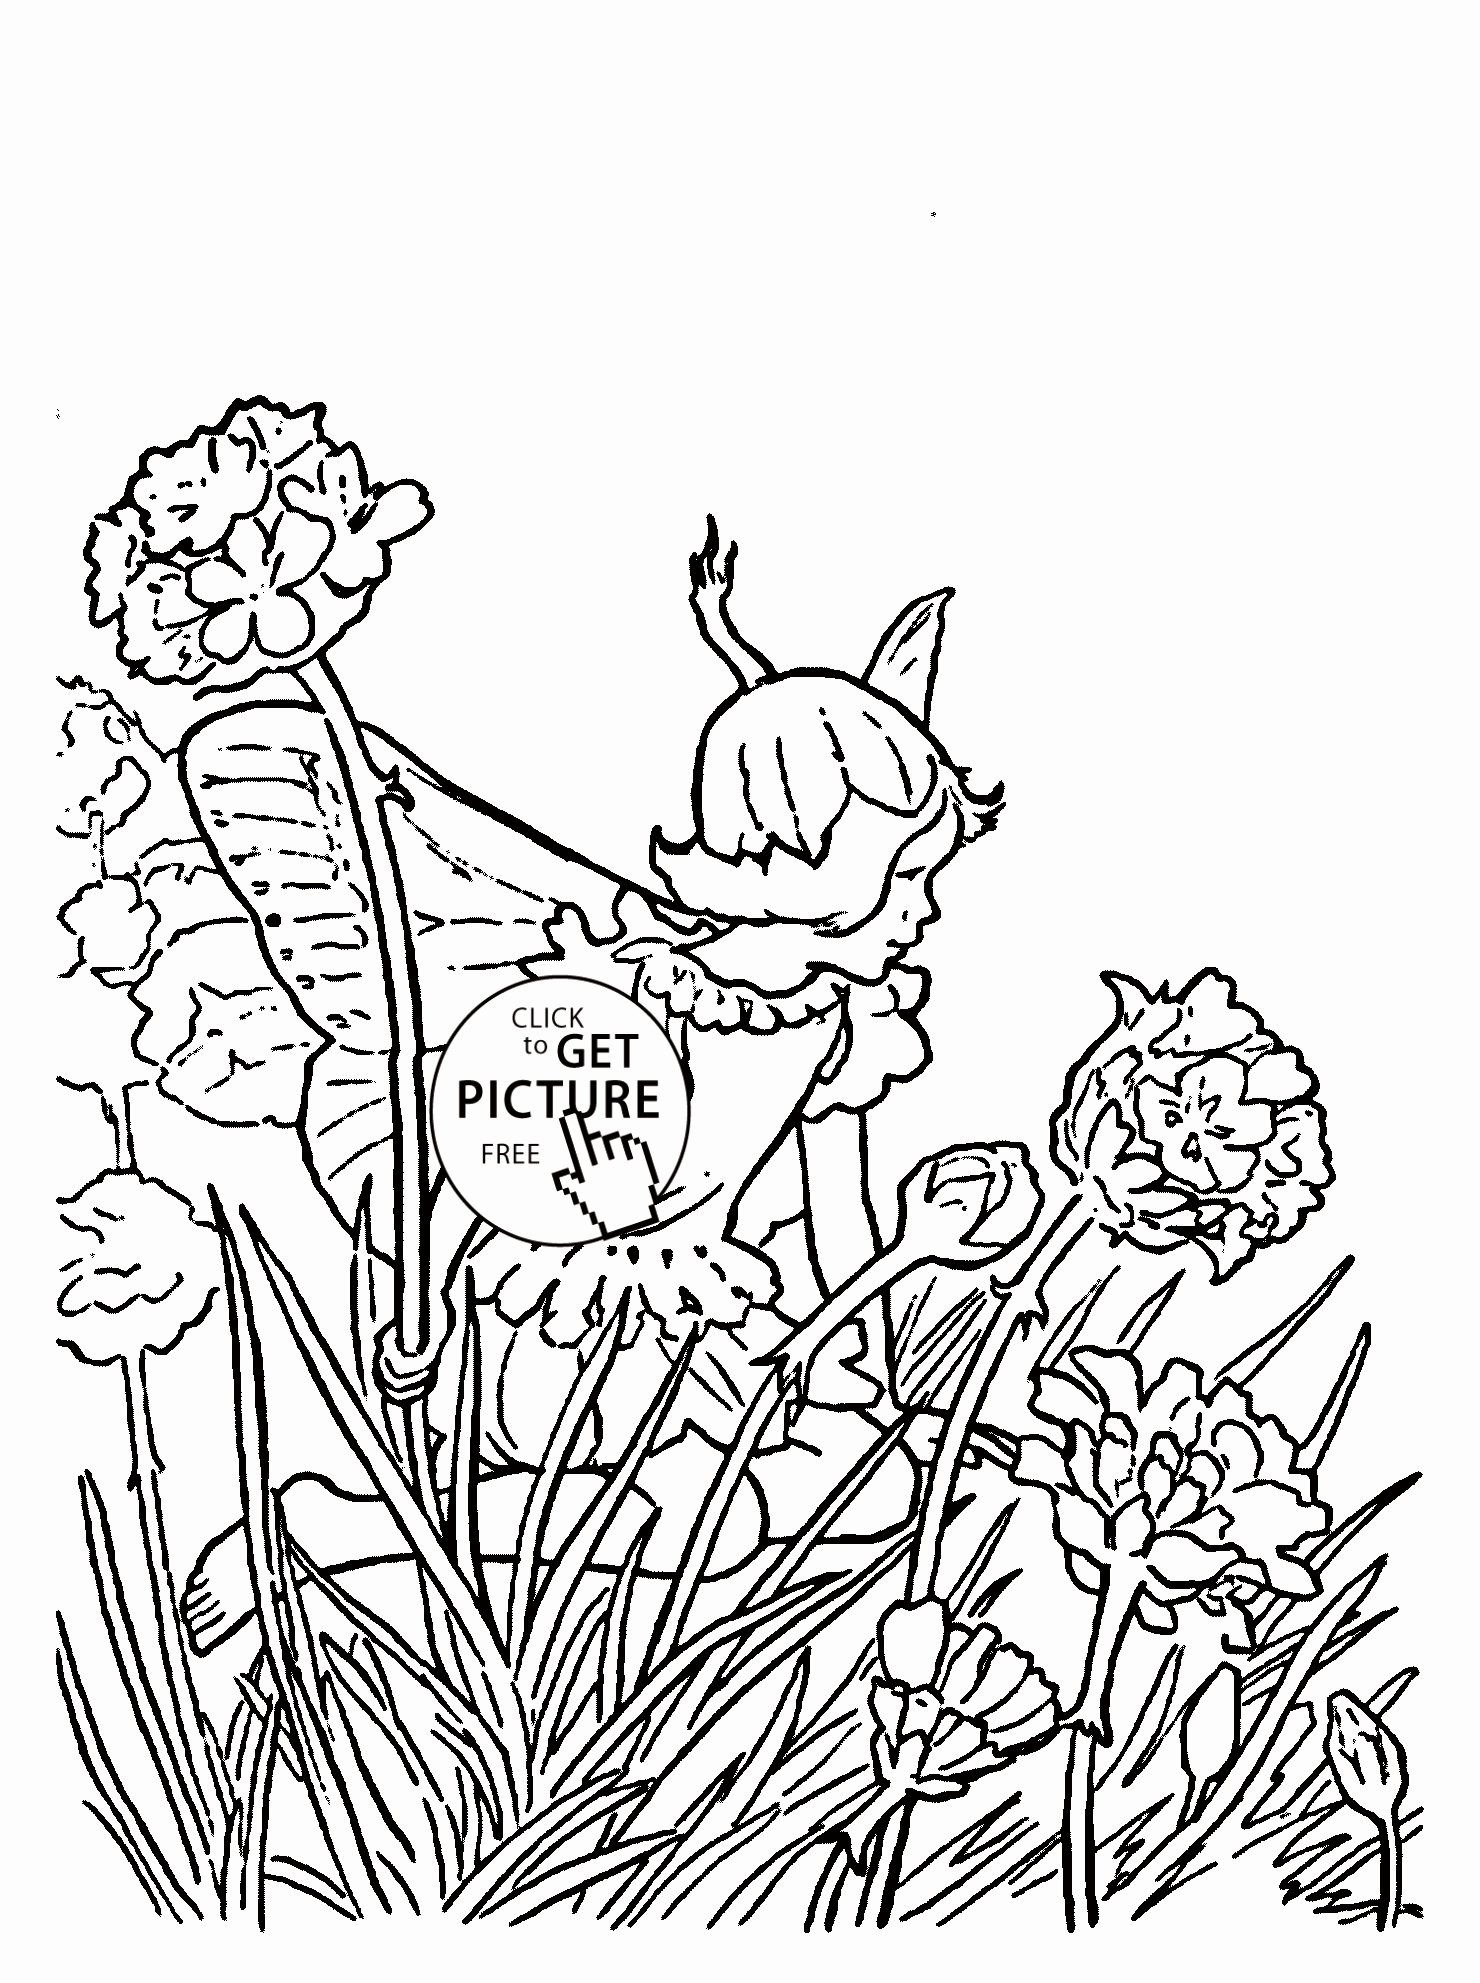 Christmas Coloring Pages Printable Crayola With Christma Free